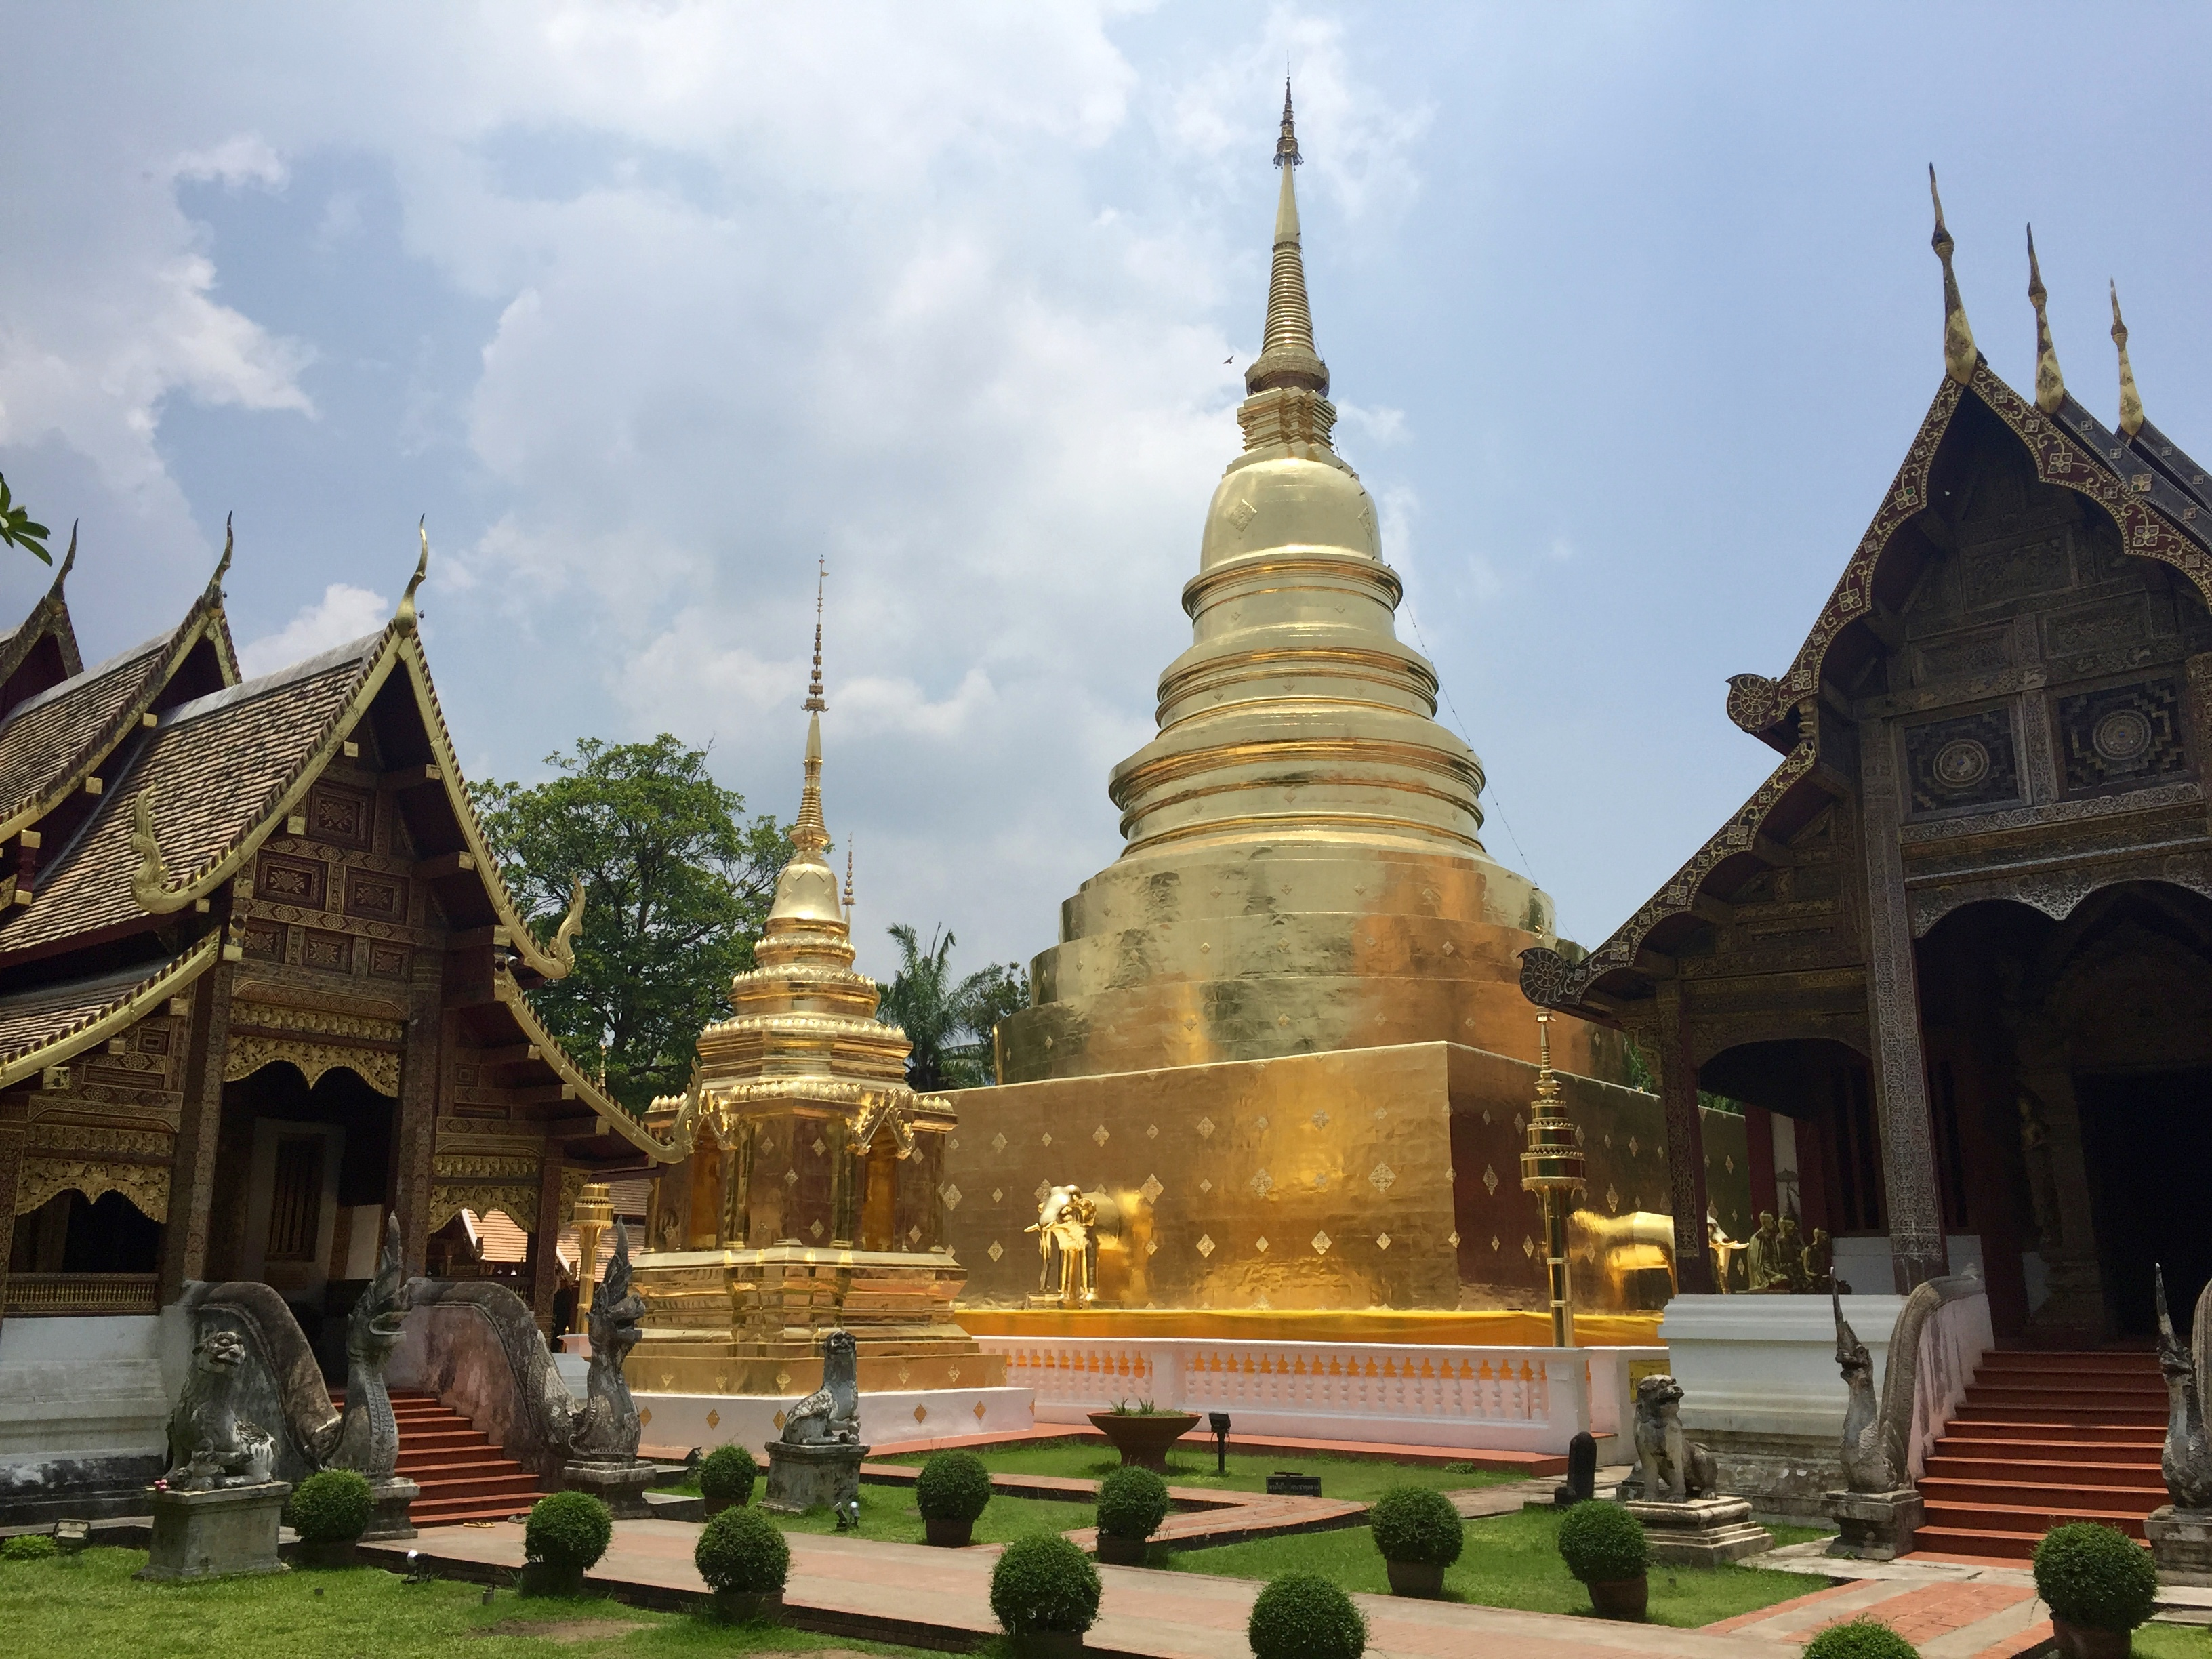 Southeast Asia Trip Report: Chiang Mai, Thailand